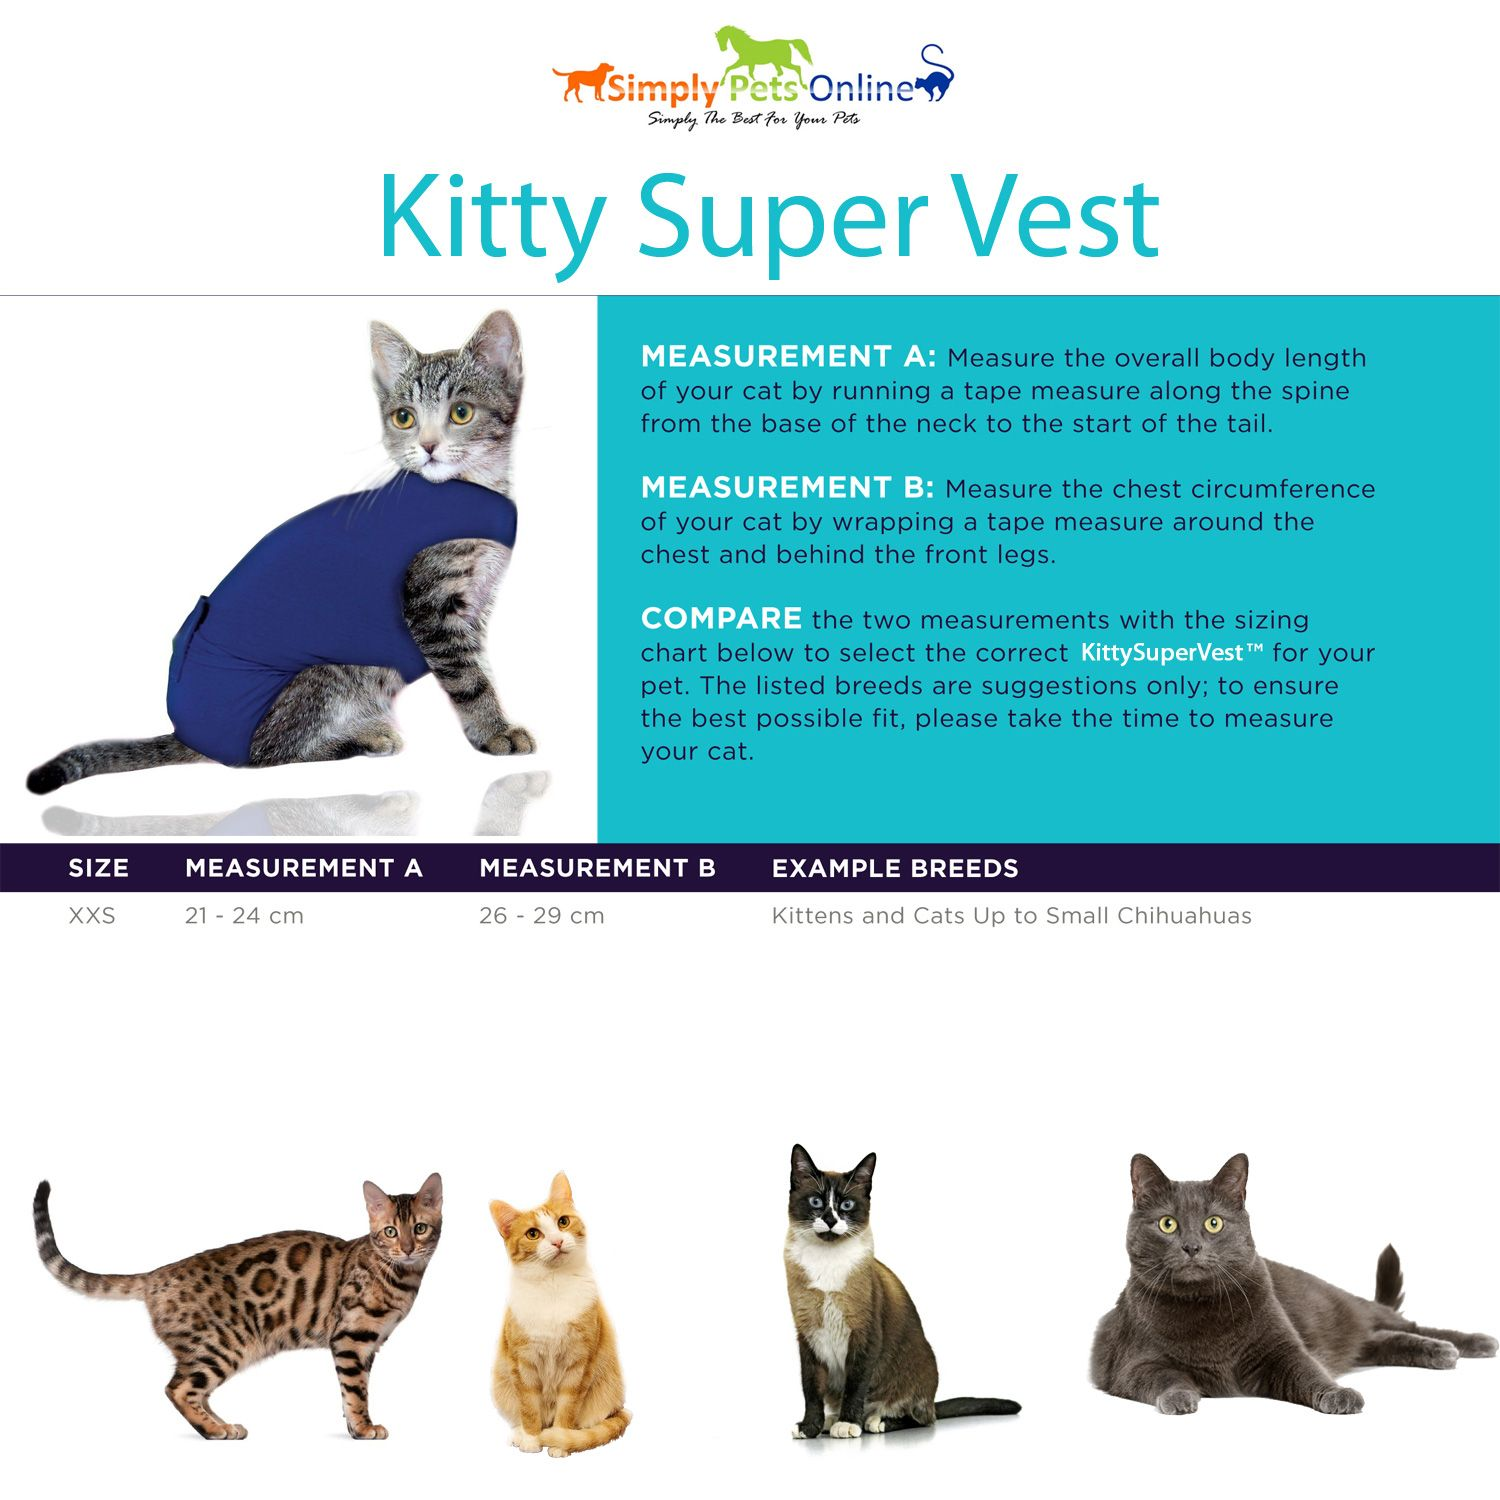 Simply Pets Online Cat Recovery Suit Cat Vest And Medical Pet Shirt The Simply Pets Online Surgical Vest Can Replace The Normal Pets Pets Online Buy A Cat